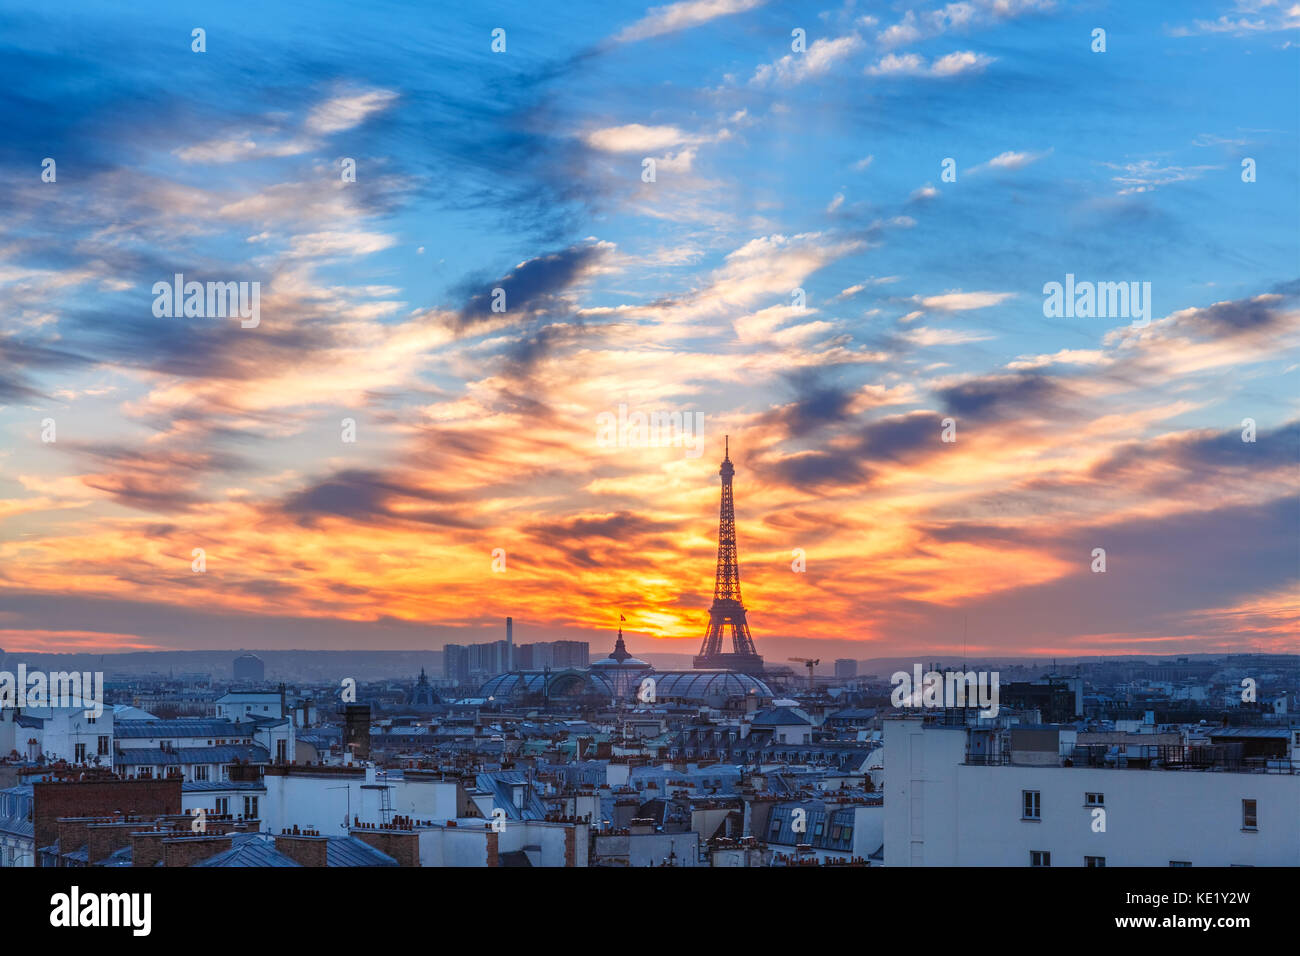 Eiffel Tower at sunset in Paris, France - Stock Image